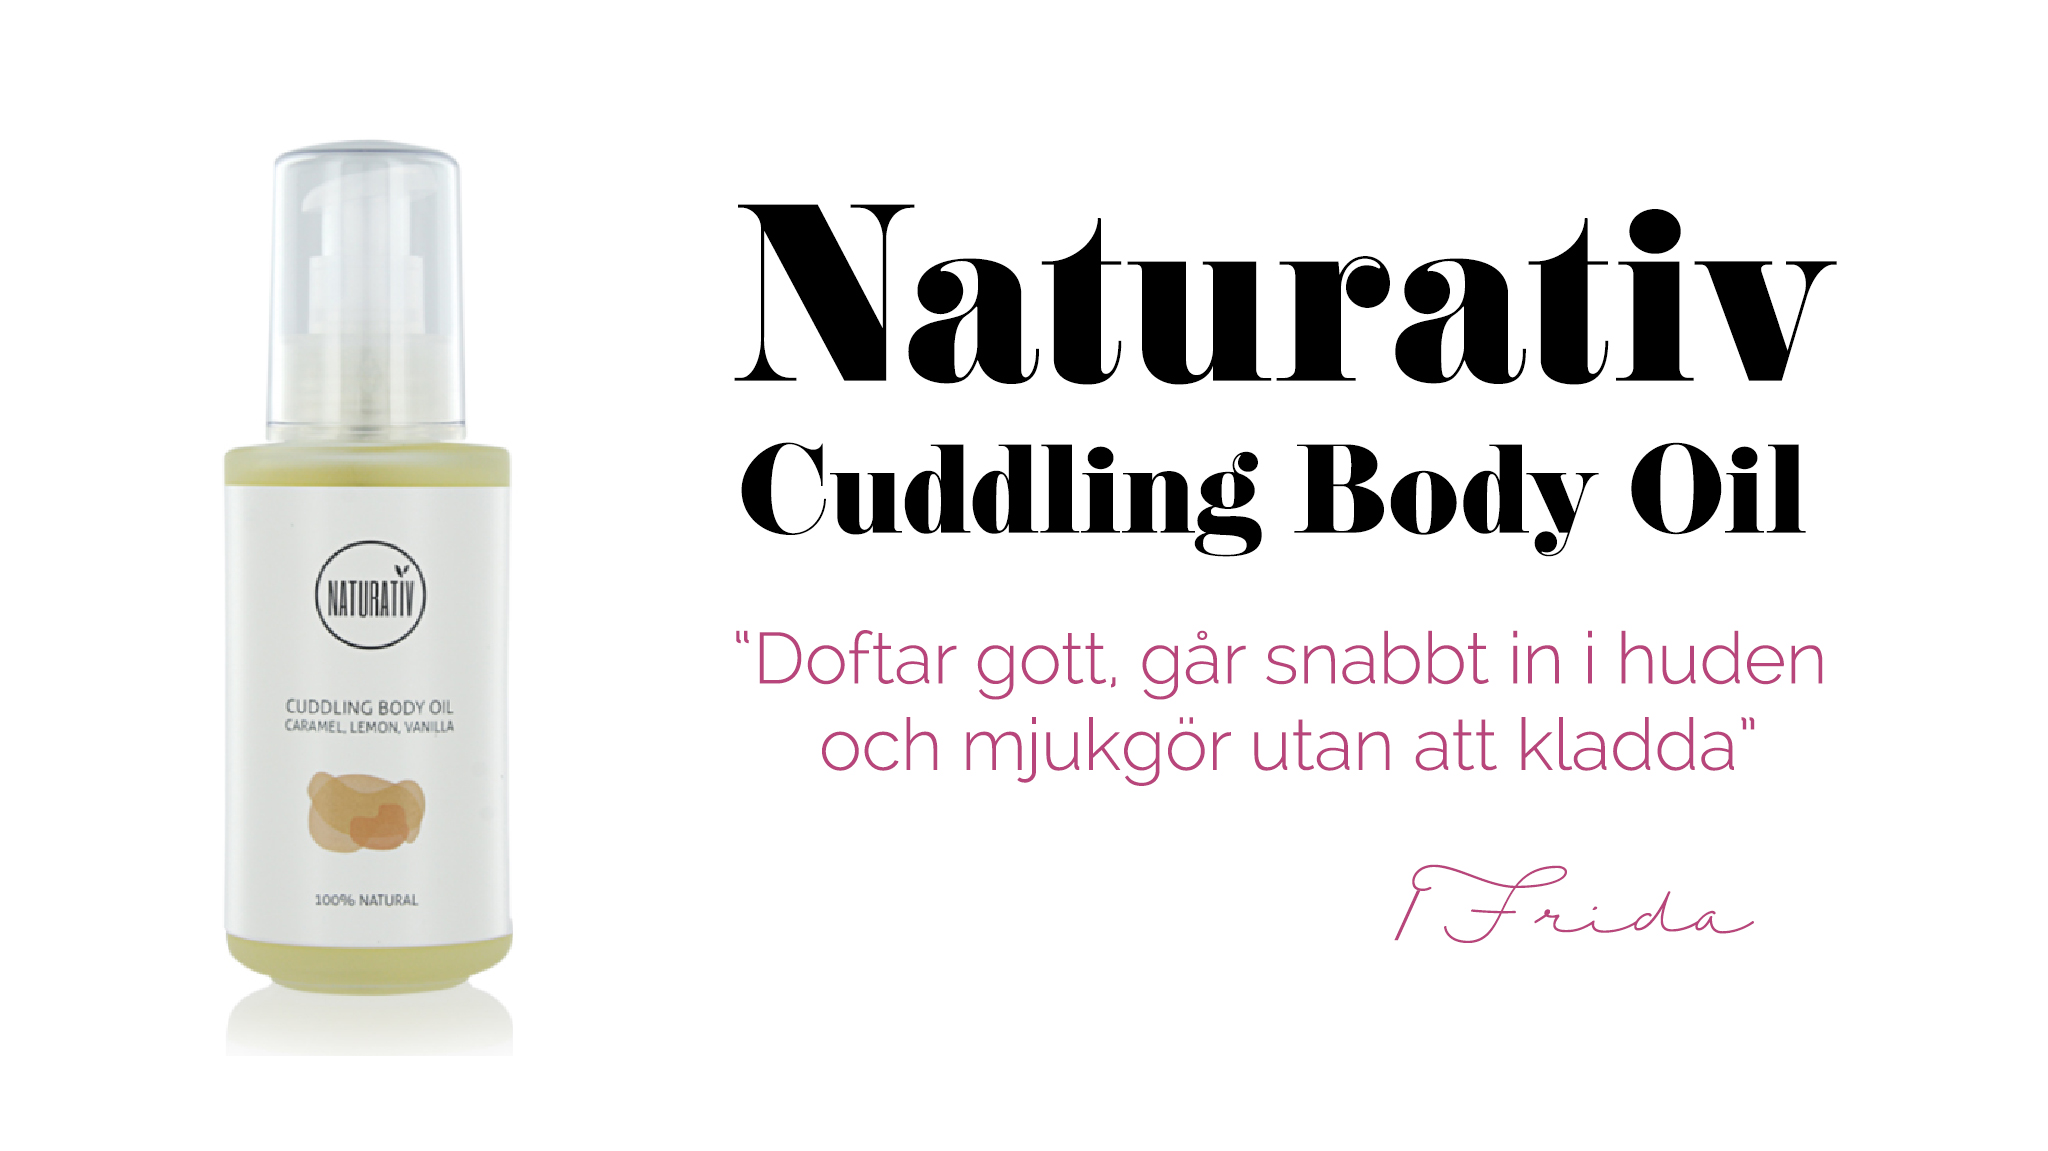 naturativ-cuddling-body-oil